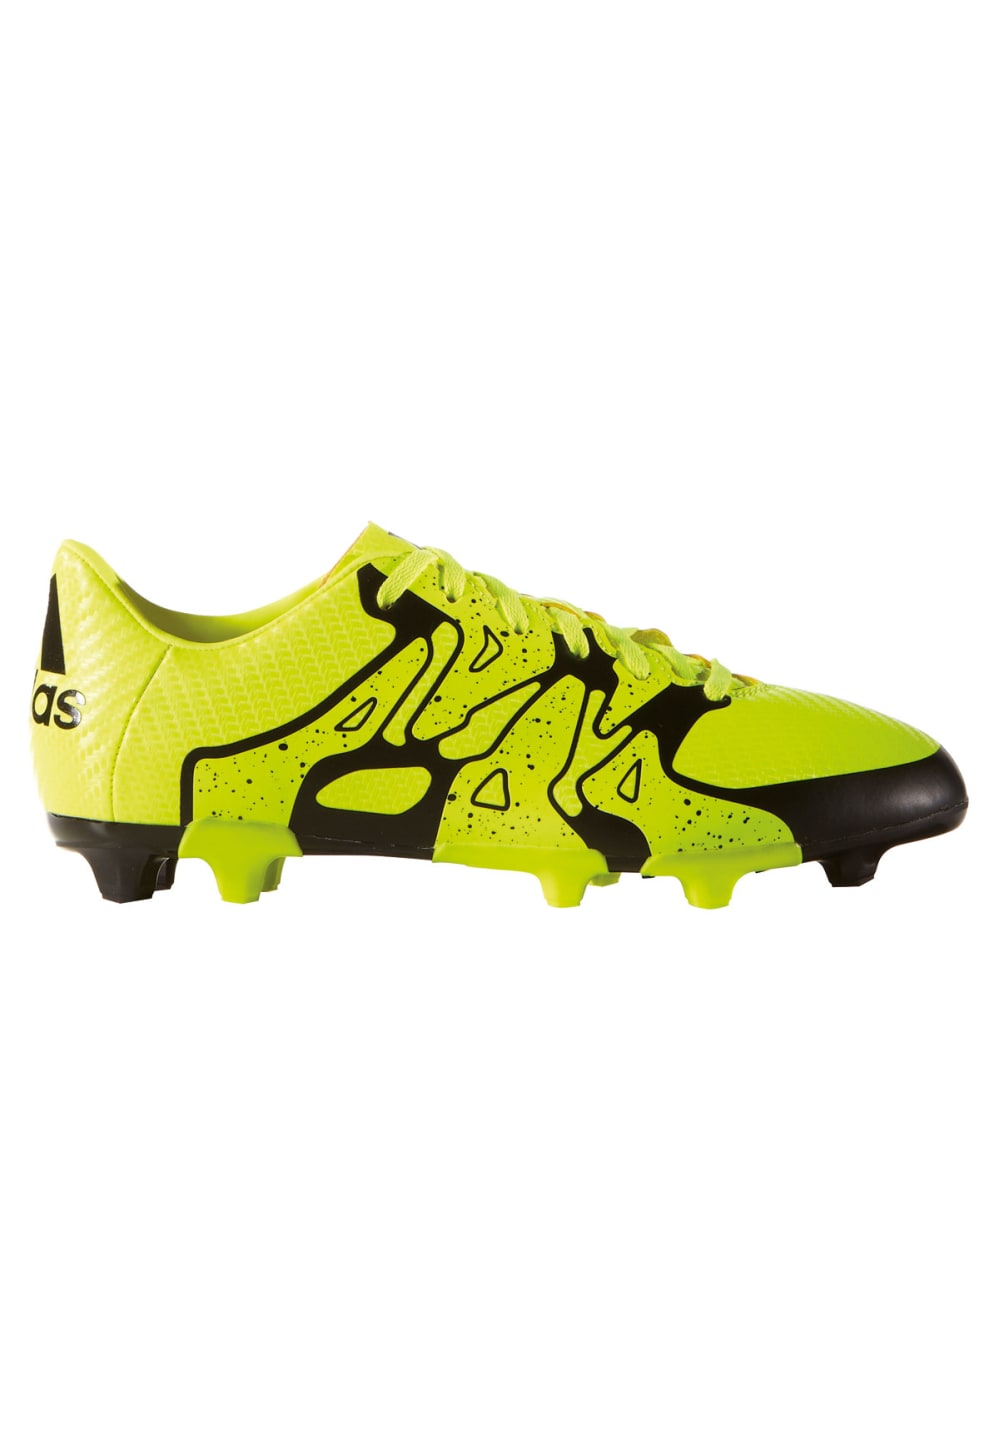 0b1e0f91049 ... adidas X 15.3 FG AG J - Football Shoes - Green. Back to Overview. 1  2   3  4  5. Previous